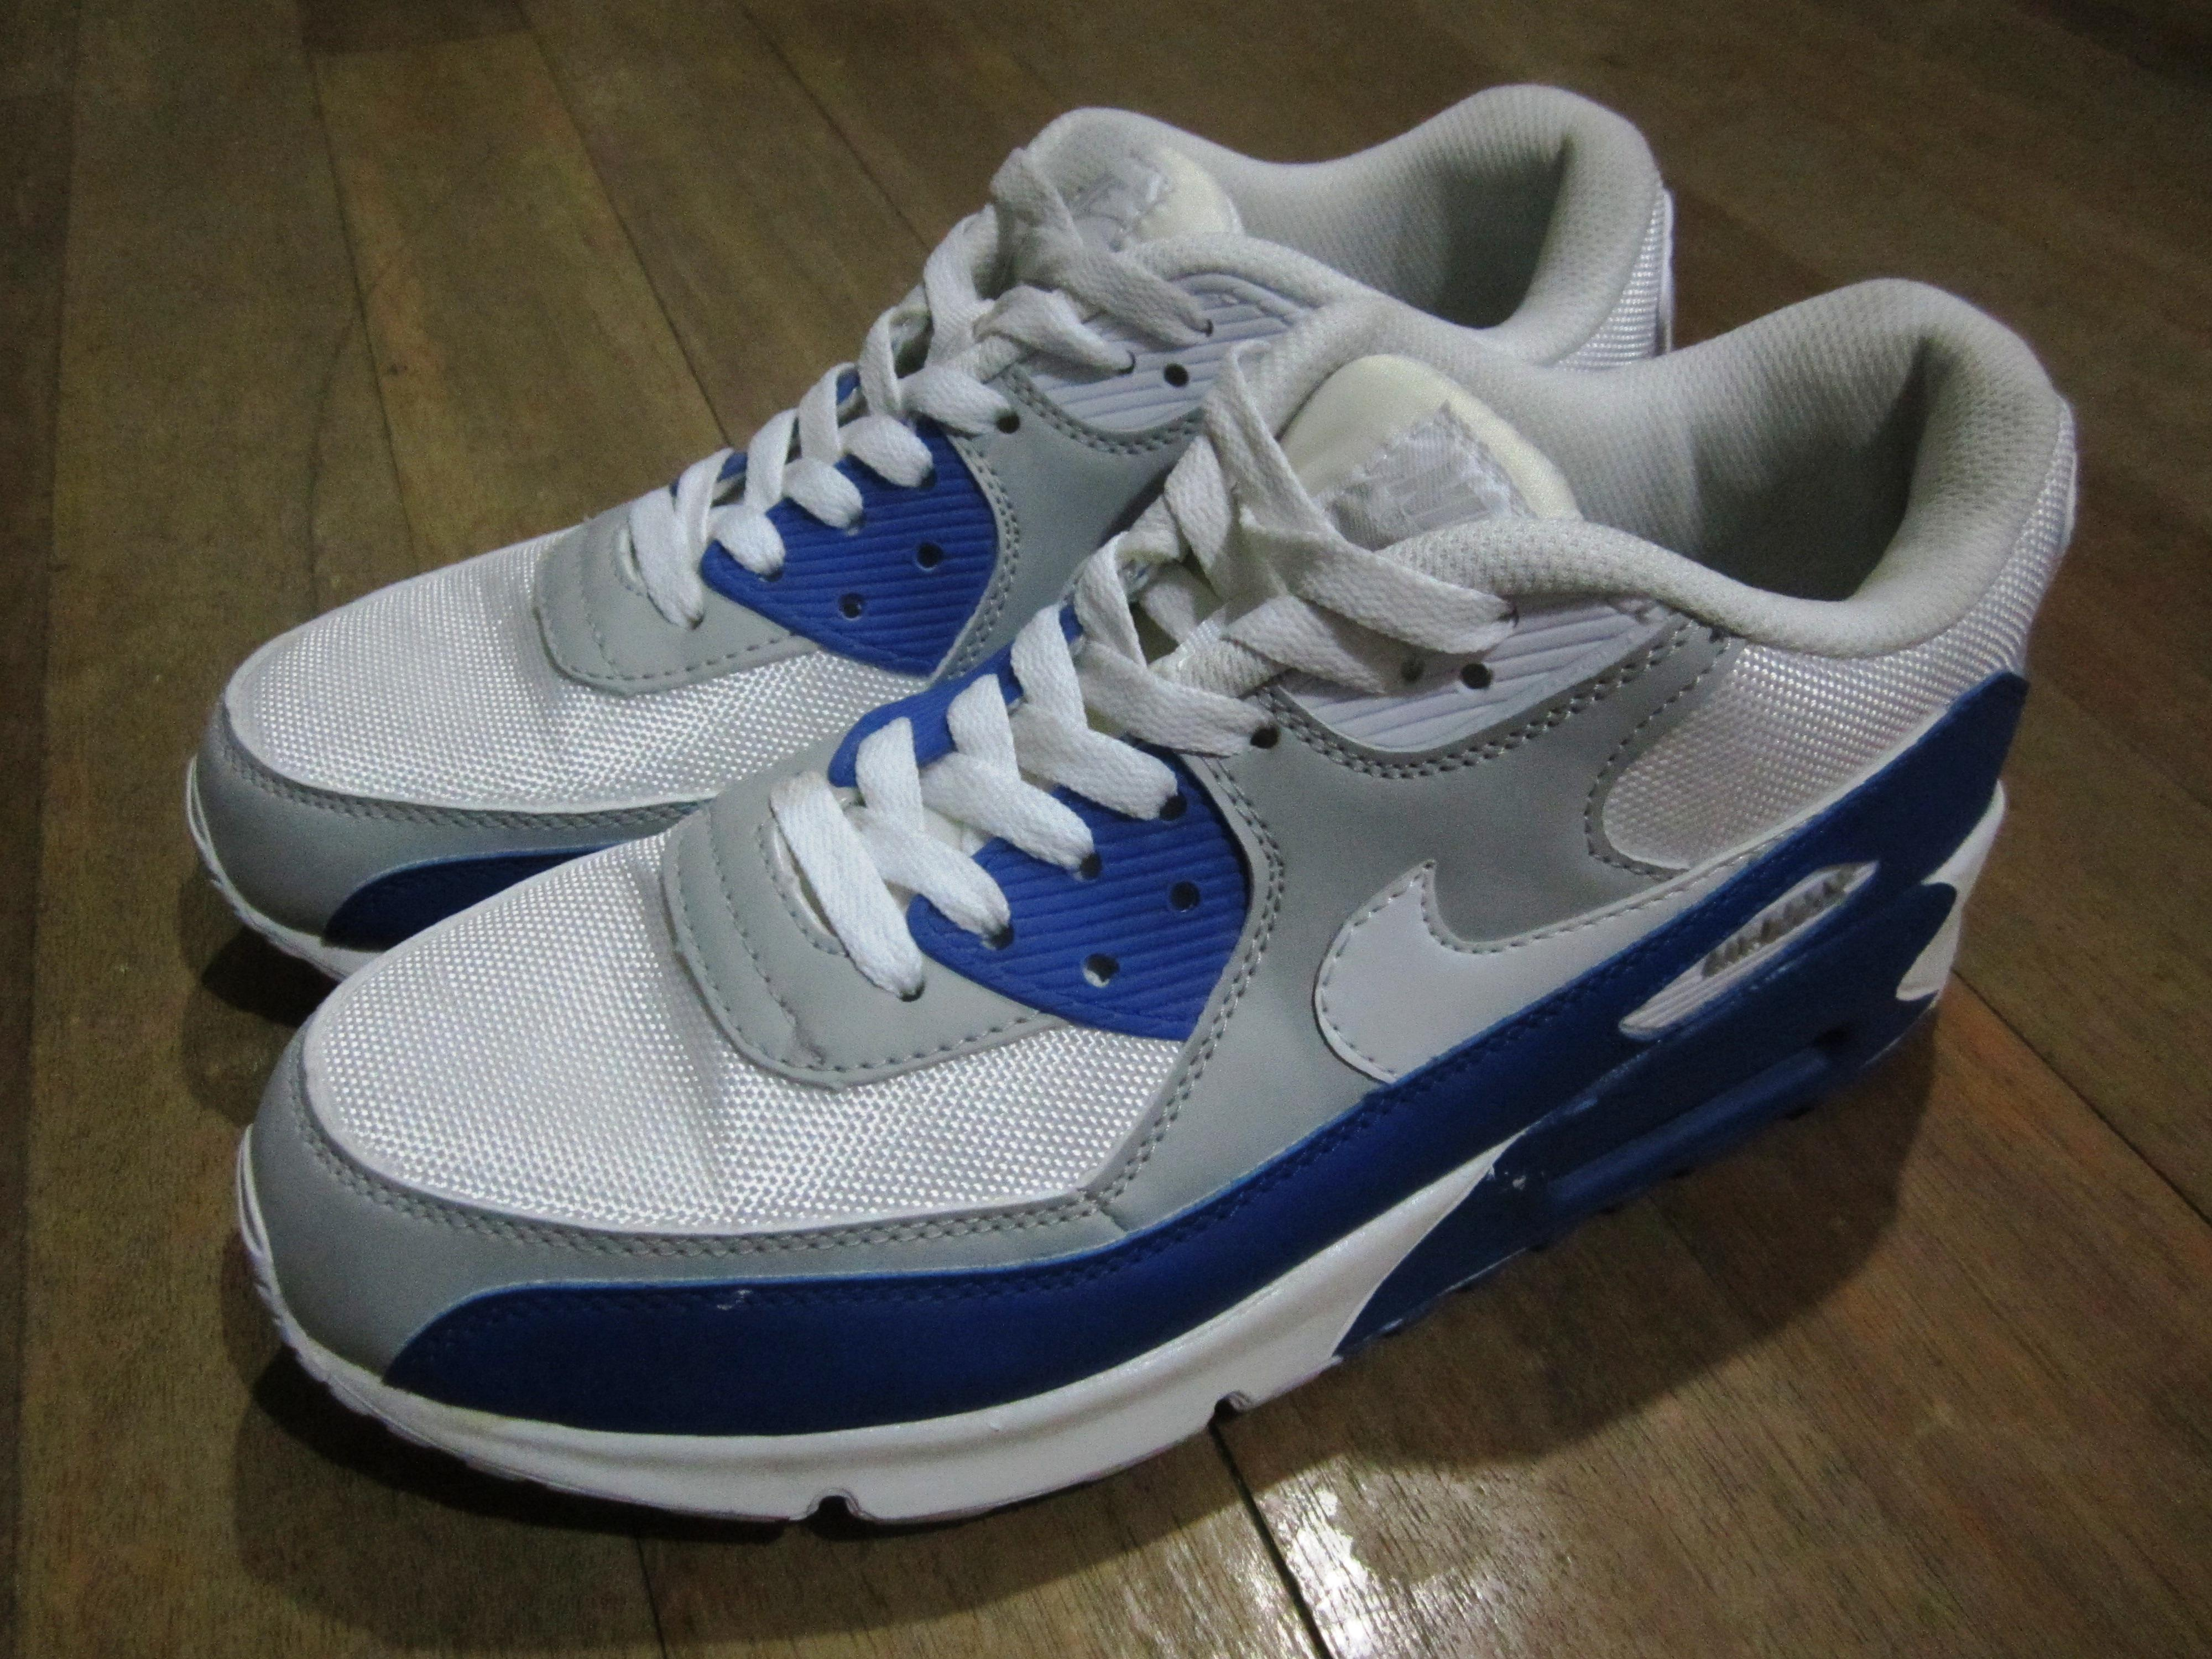 Shop air max pas cher en chine Site Officiel 1877